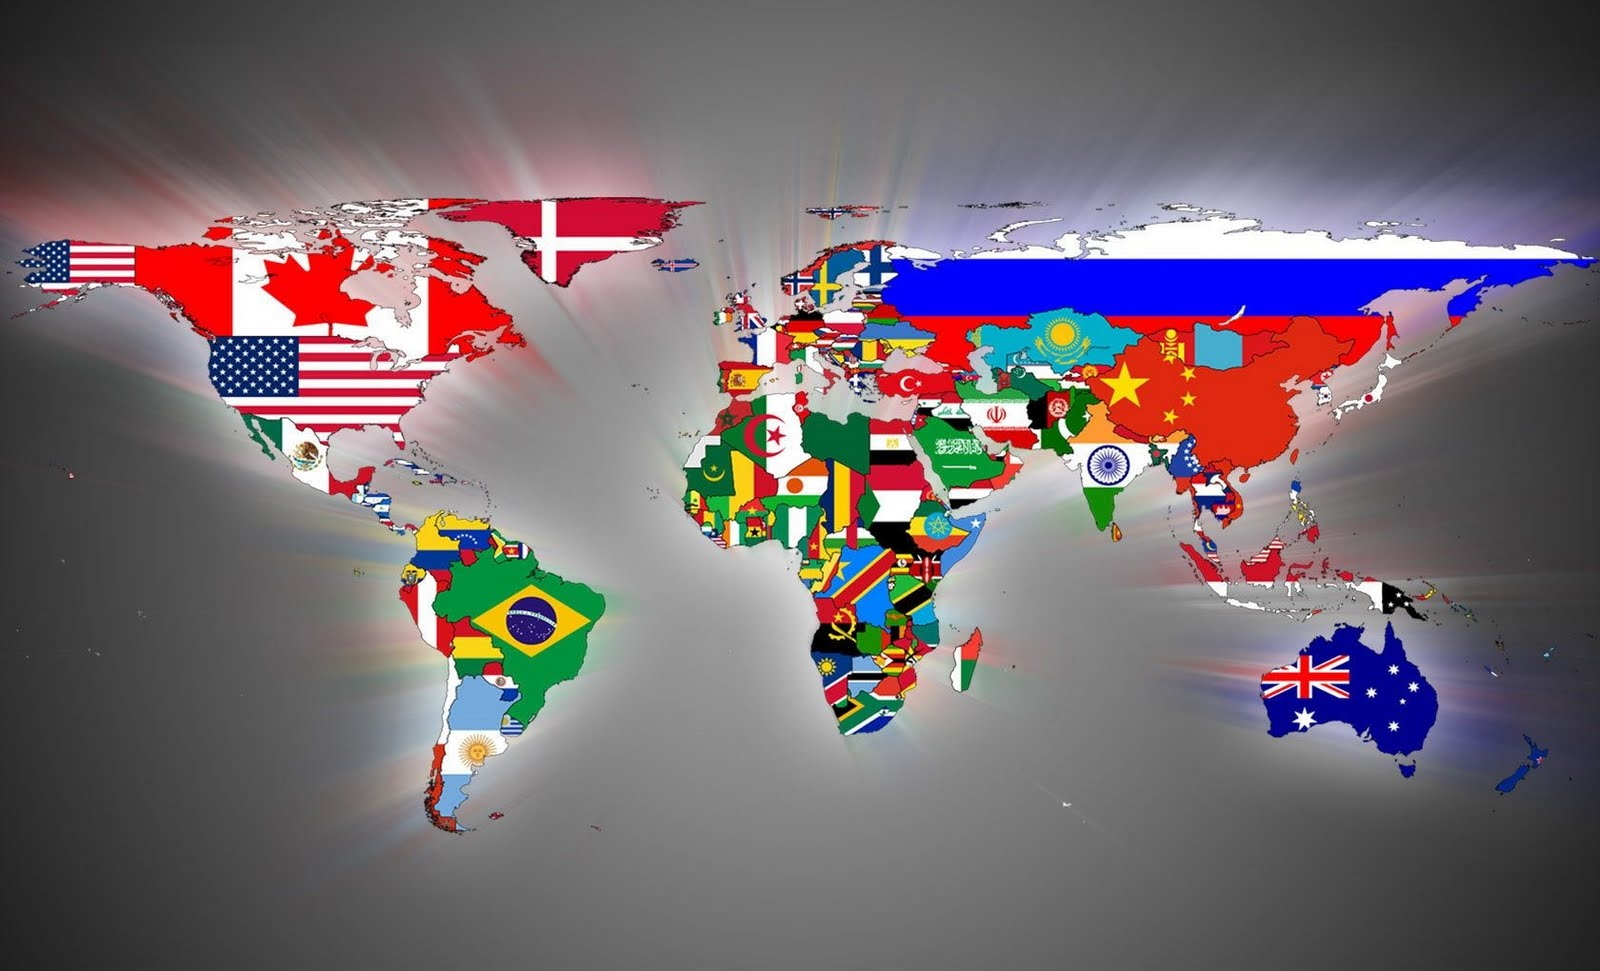 Wallpapers worldwide wallpapersafari world map all countries flags hd wallpapers epic desktop backgrounds 1600x971 gumiabroncs Images